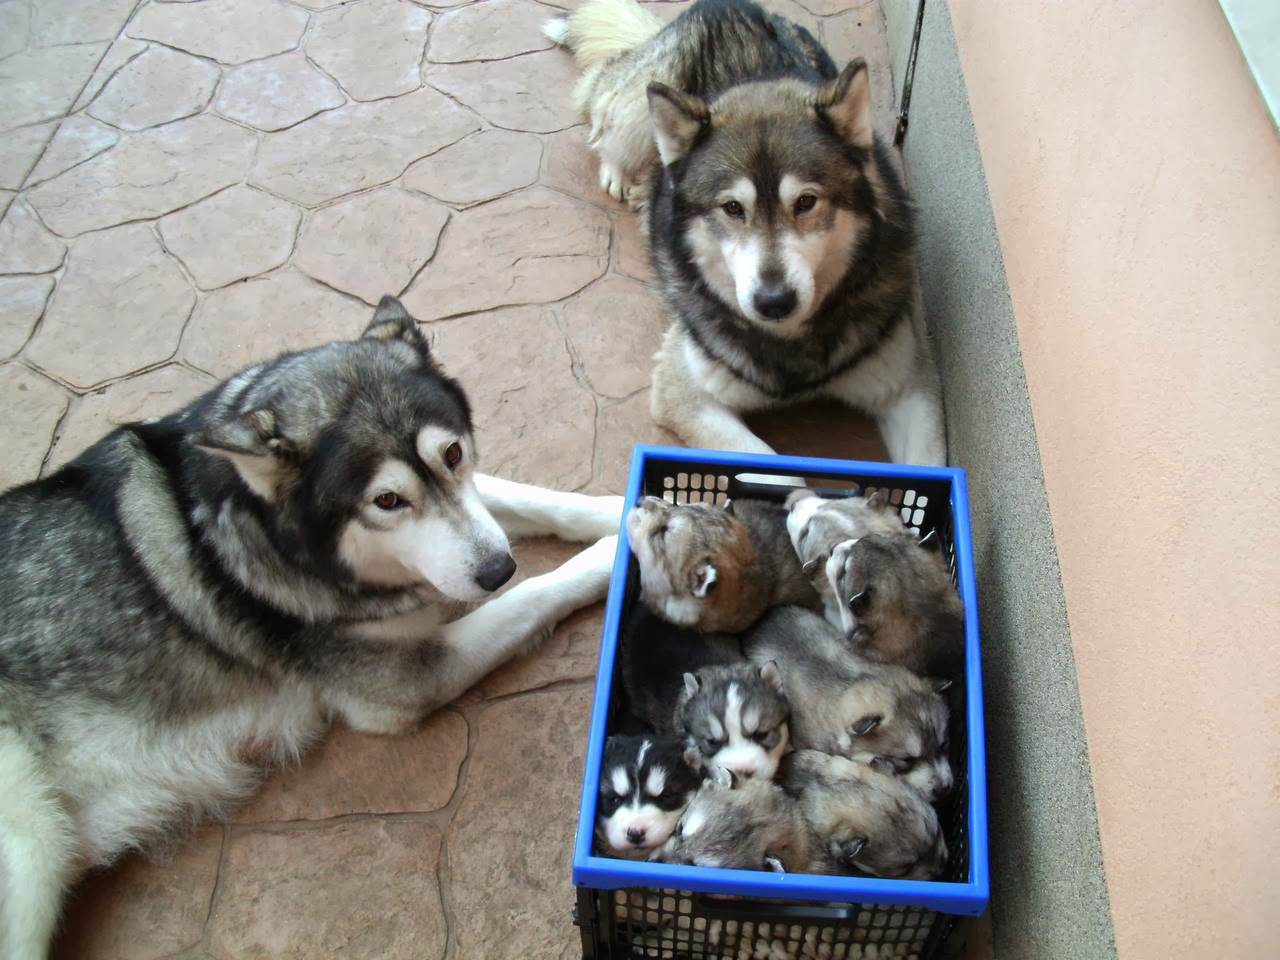 Cute dogs - part 11 (50 pics), mommy and daddy husky with their puppies